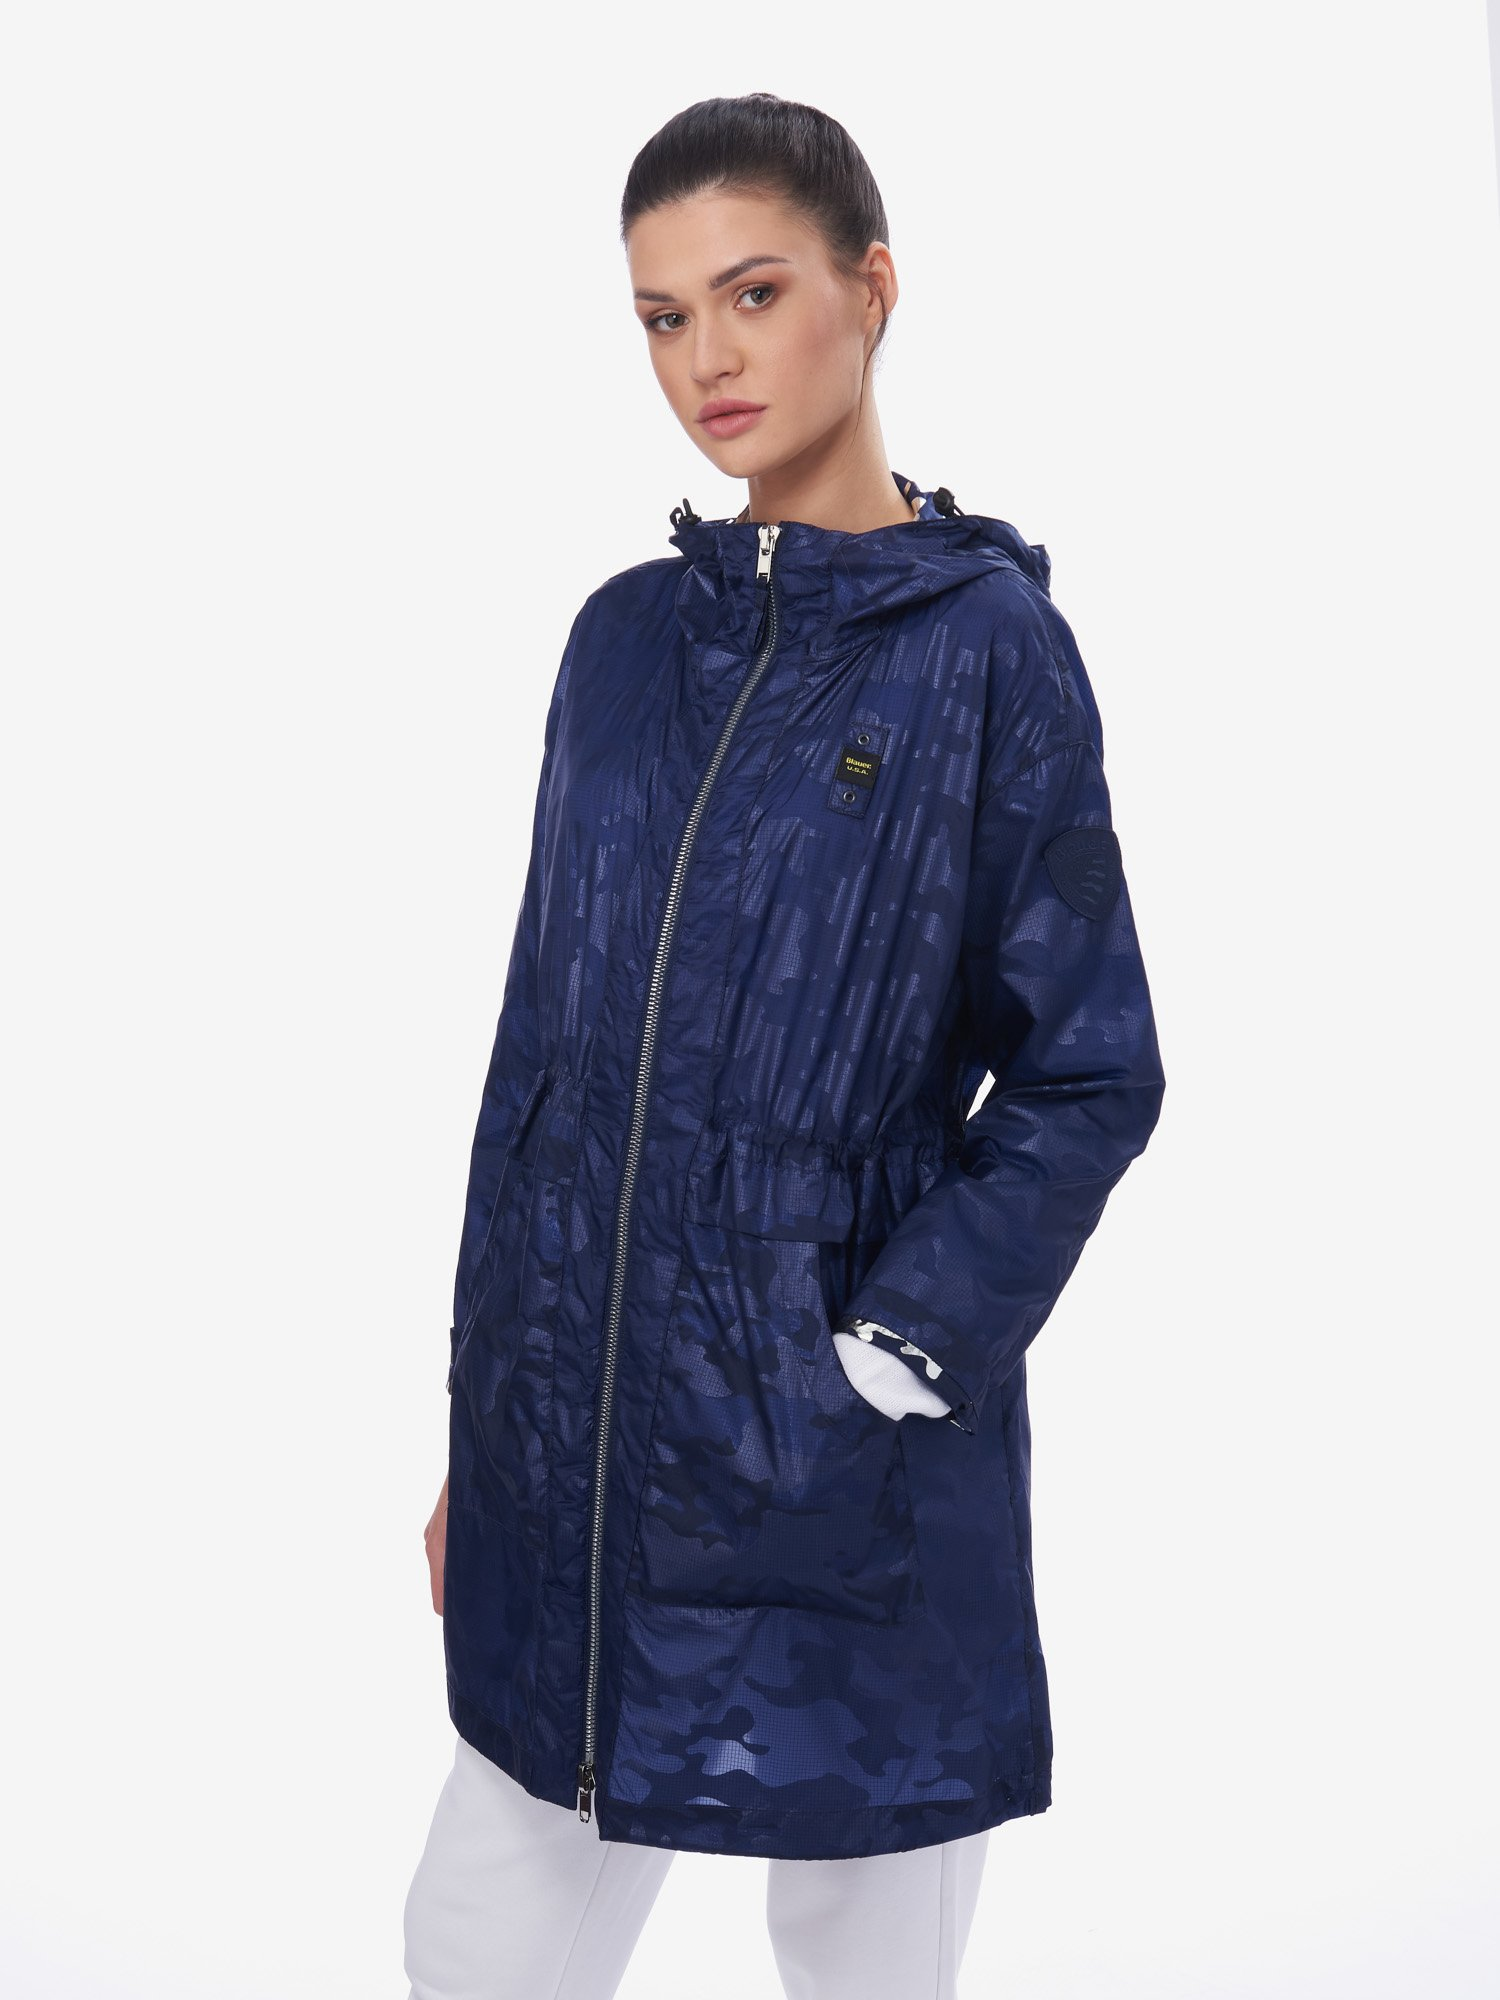 RICE ULTRALIGHT UNLINED TRENCH COAT - Blauer